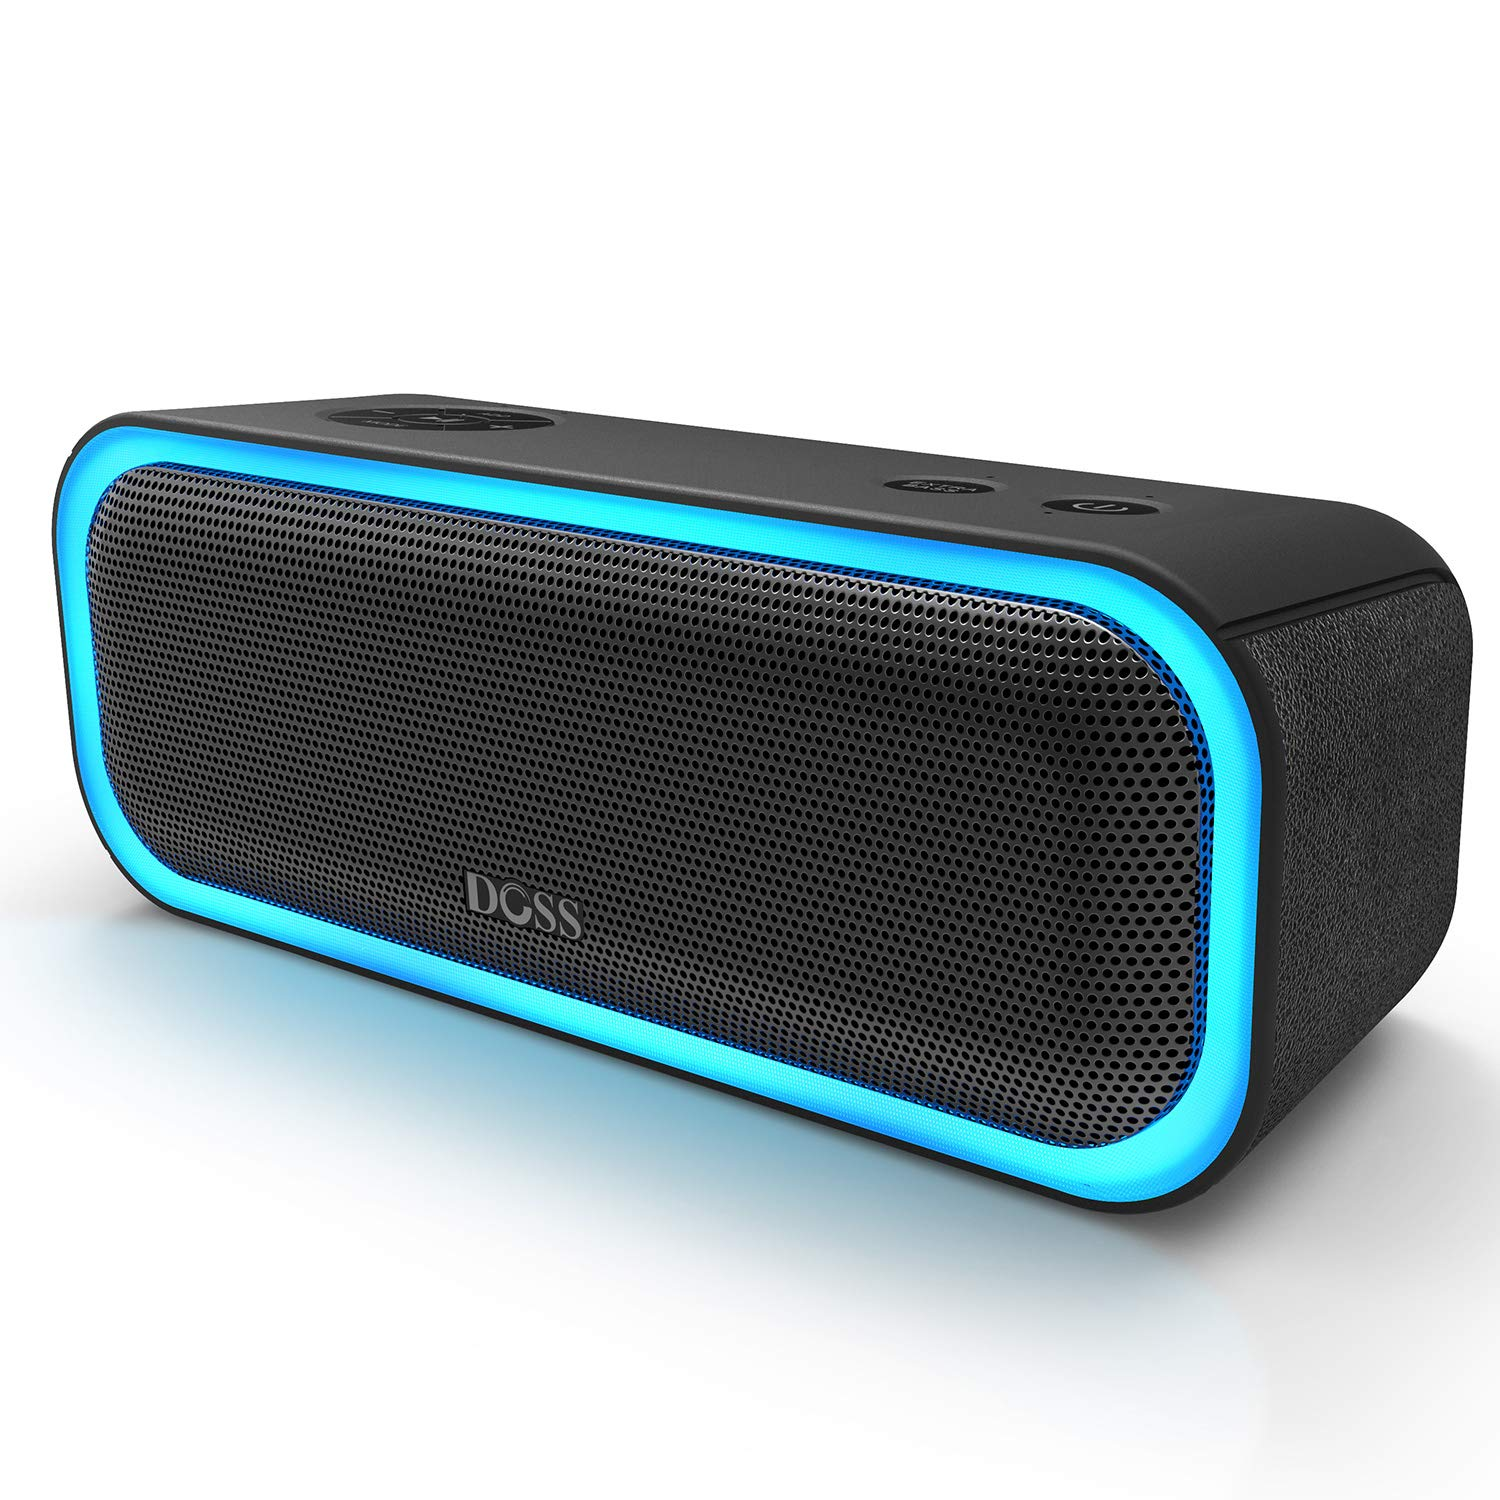 [Upgraded] DOSS SoundBox Pro Portable Wireless Bluetooth Speaker with 20W Stereo Sound, Active Extra Bass, Wireless Stereo Paring, Multiple Colors Lights, Waterproof IPX5, 10 Hrs Battery Life -Black by DOSS